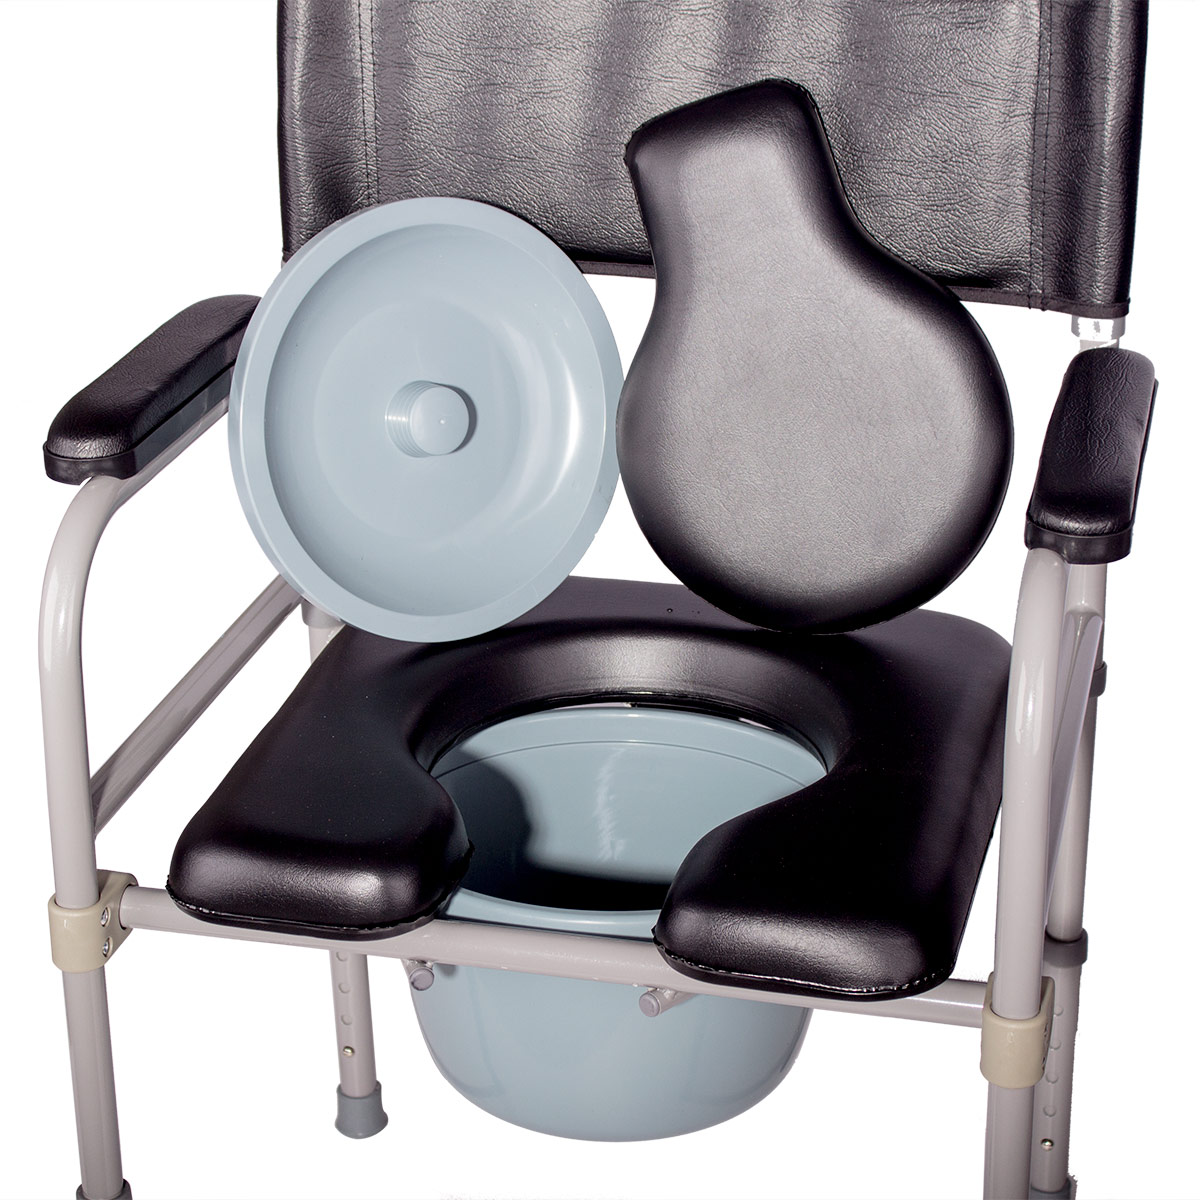 USD 51.83] Yad elderly potty chair pregnant women the toilet chairs ...